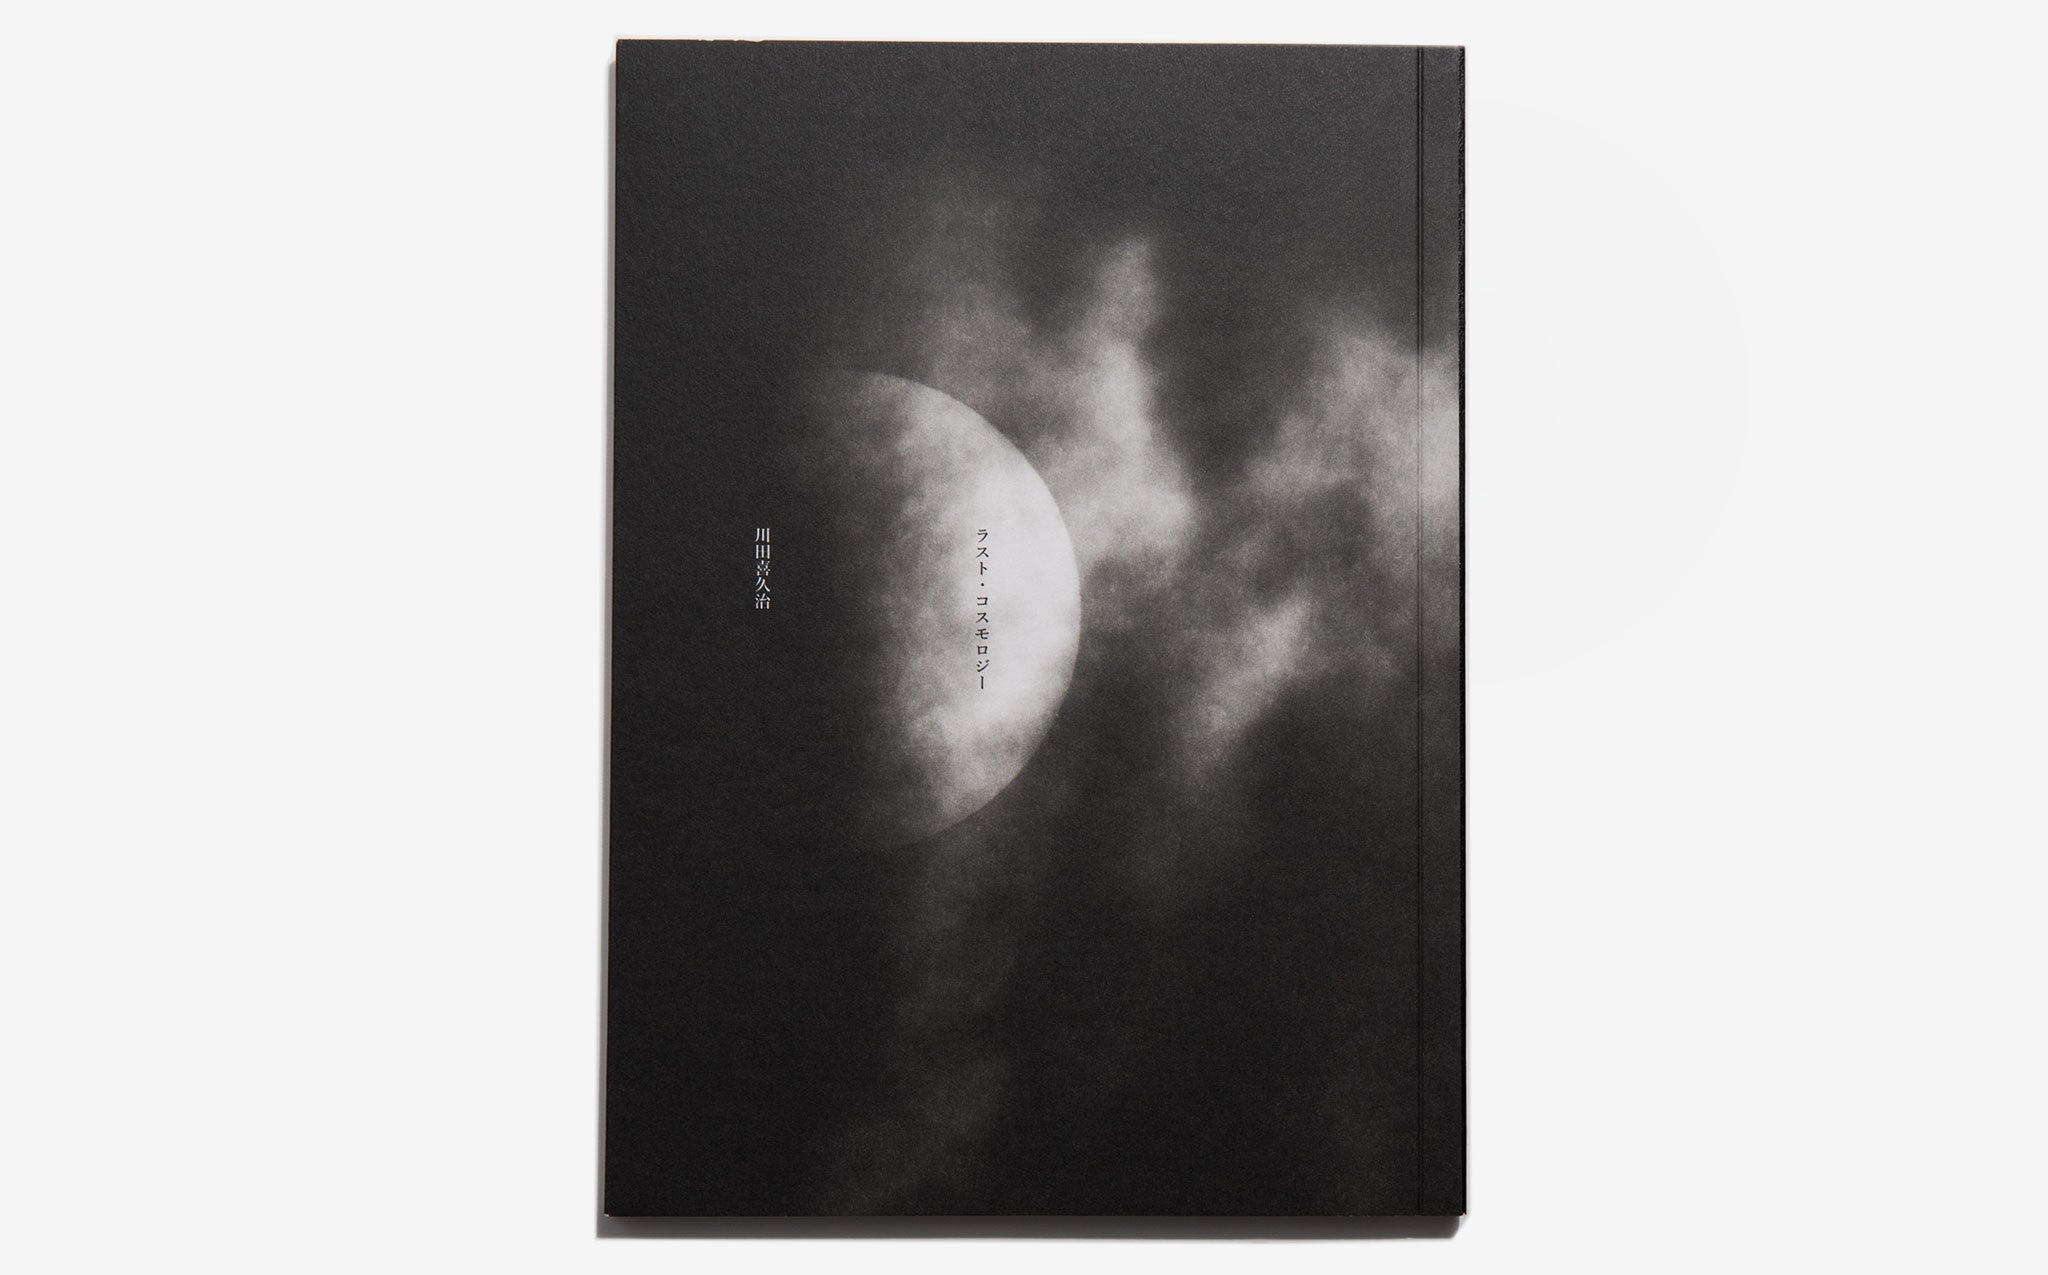 The Last Cosmology - Kikuji Kawada kindred black